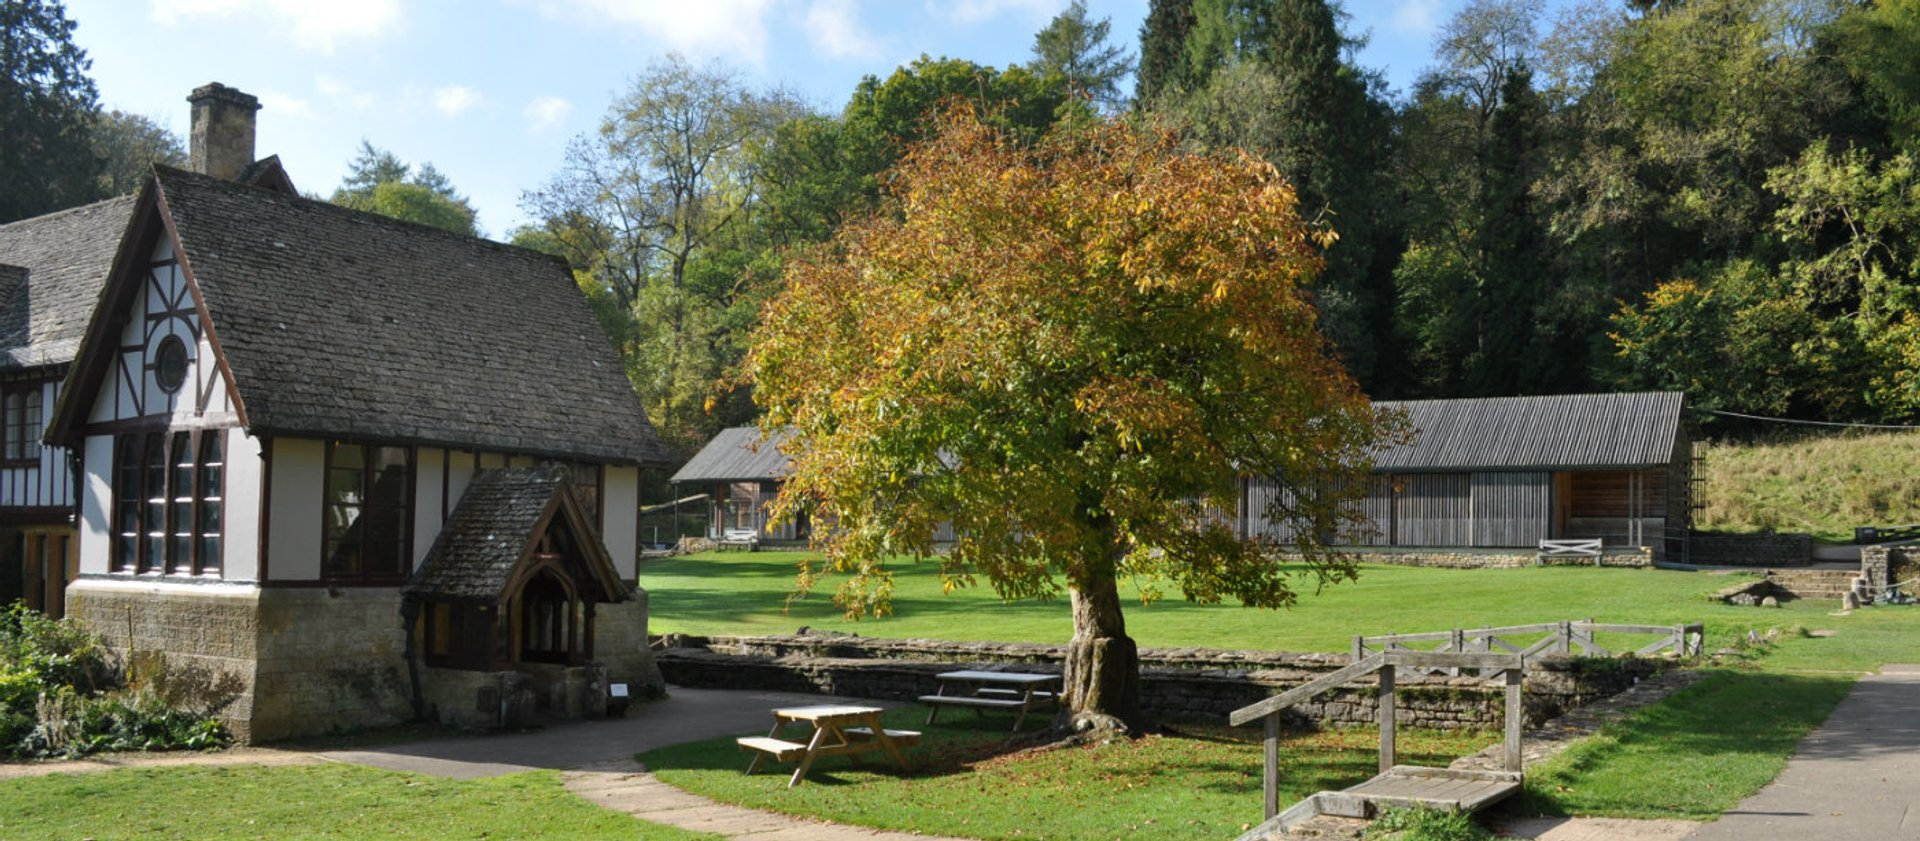 manor-cottages-holiday-cottage-northleach-visitory-guide-chedworth-roman-villa.jpg